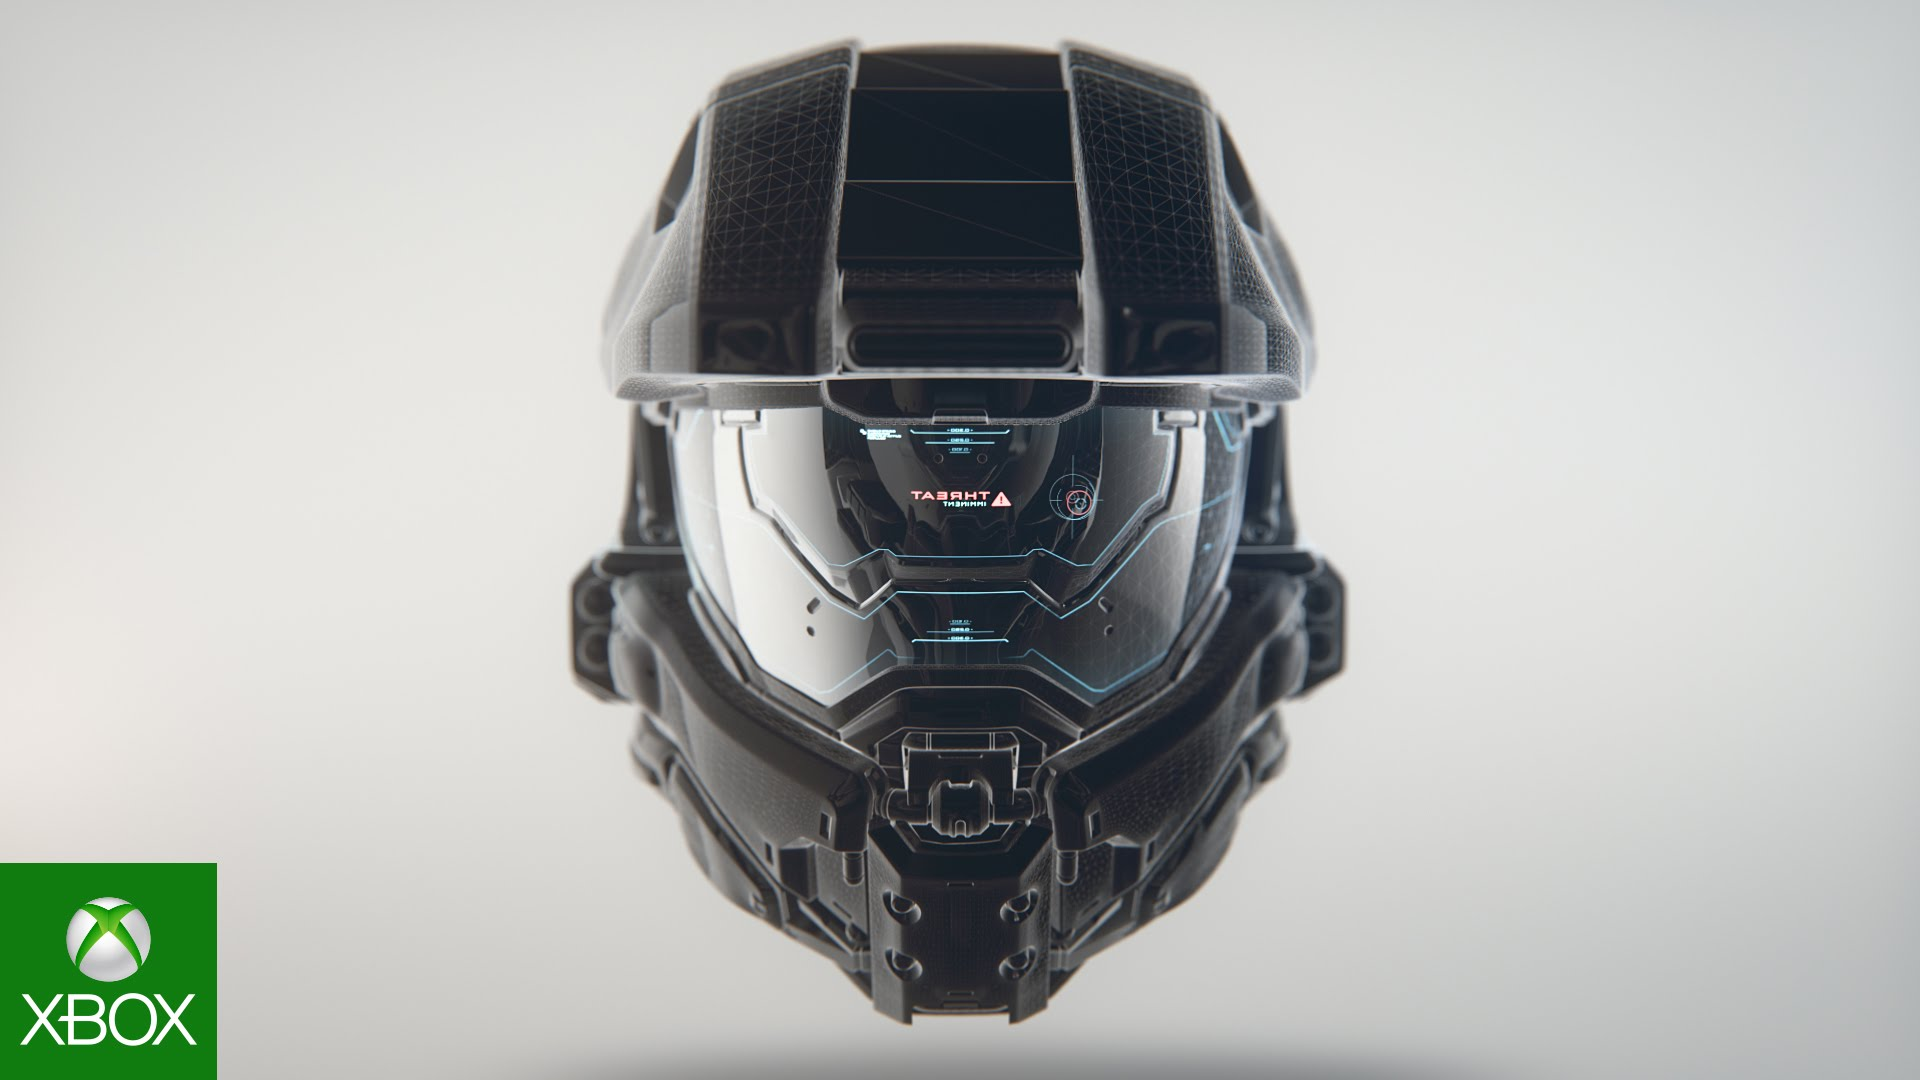 Halo Wallpaper Fall Of Reach Check Out Halo 5 Guardians Armor Sets Amp Colors Helmets